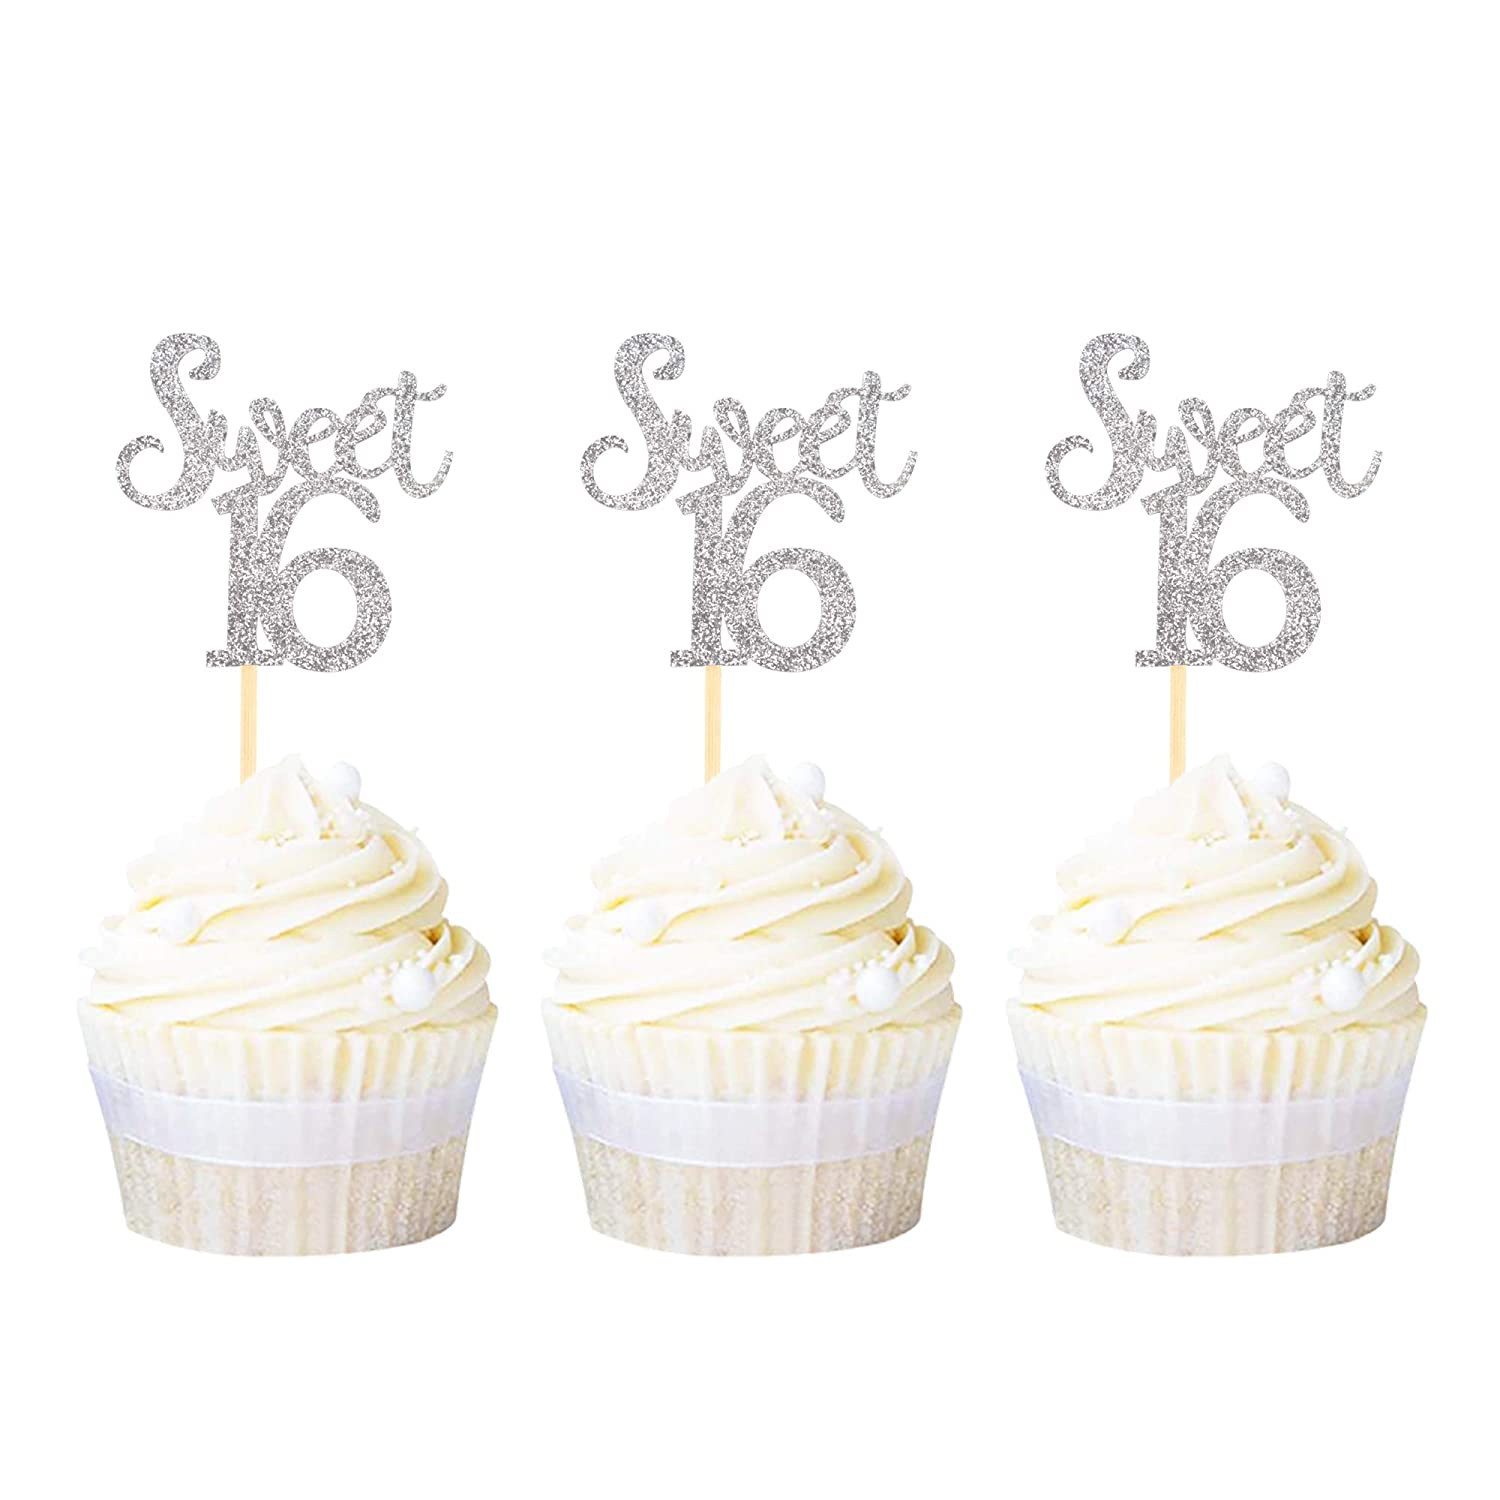 Ercadio Silver Sweet 16 Cupcake Outstanding Sixteen Glitter Spring new work Cupc Toppers Age